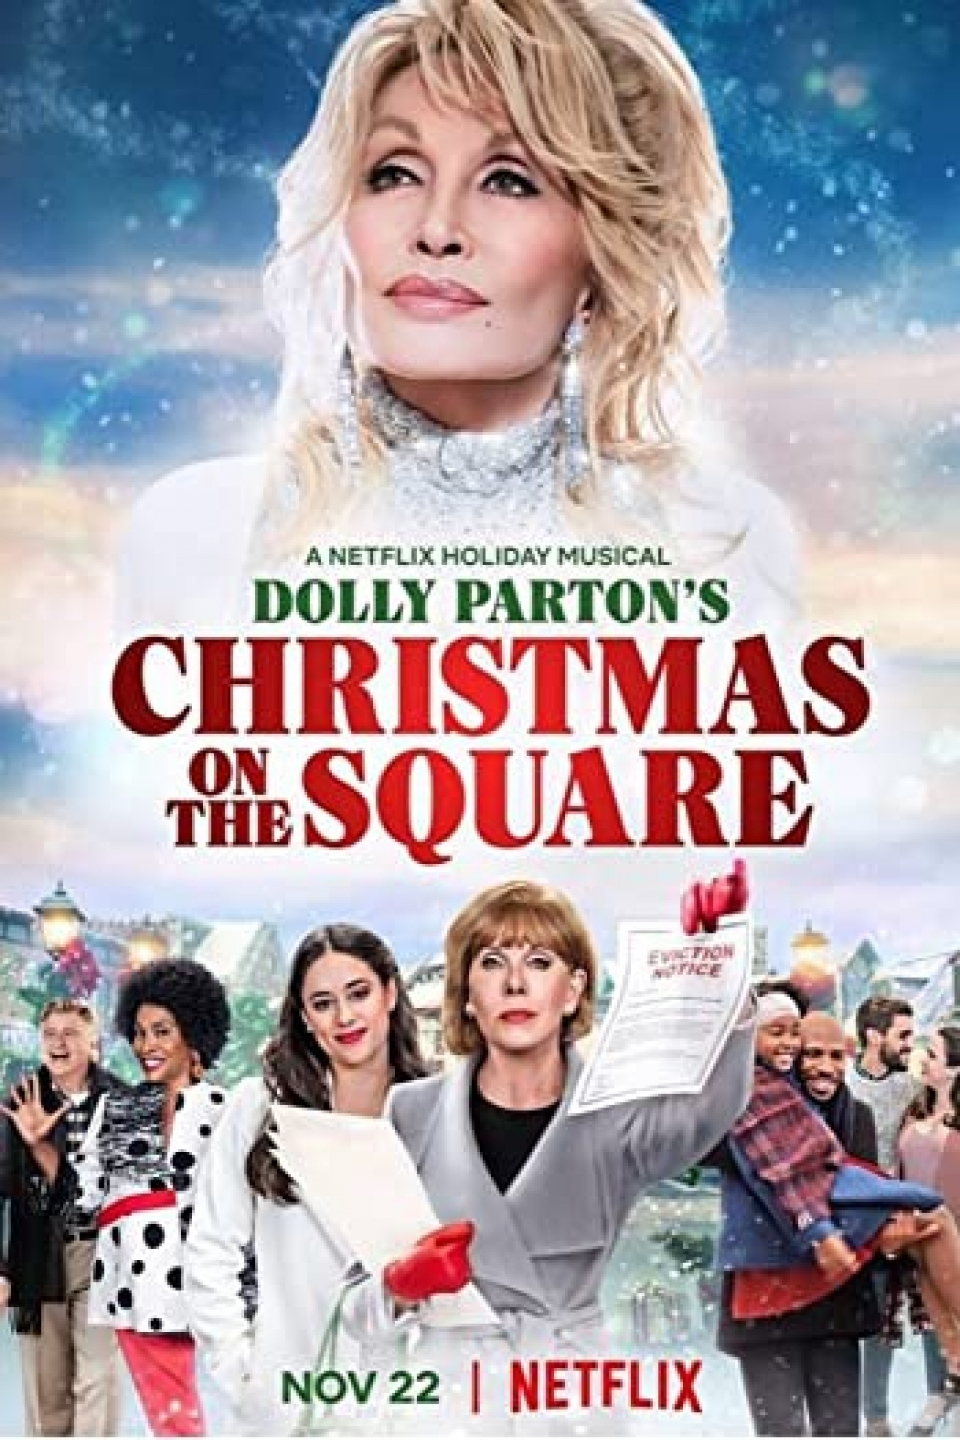 DOLLY PARTON'S CHRISTMAS ON THE SQUARE | NETFLIX (2020)